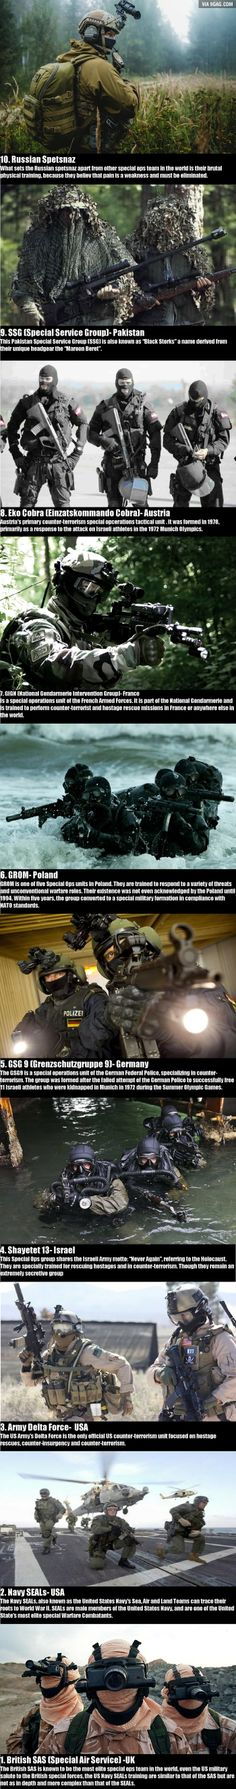 Top Ten Special ops team in the world - Very interesting and cool!